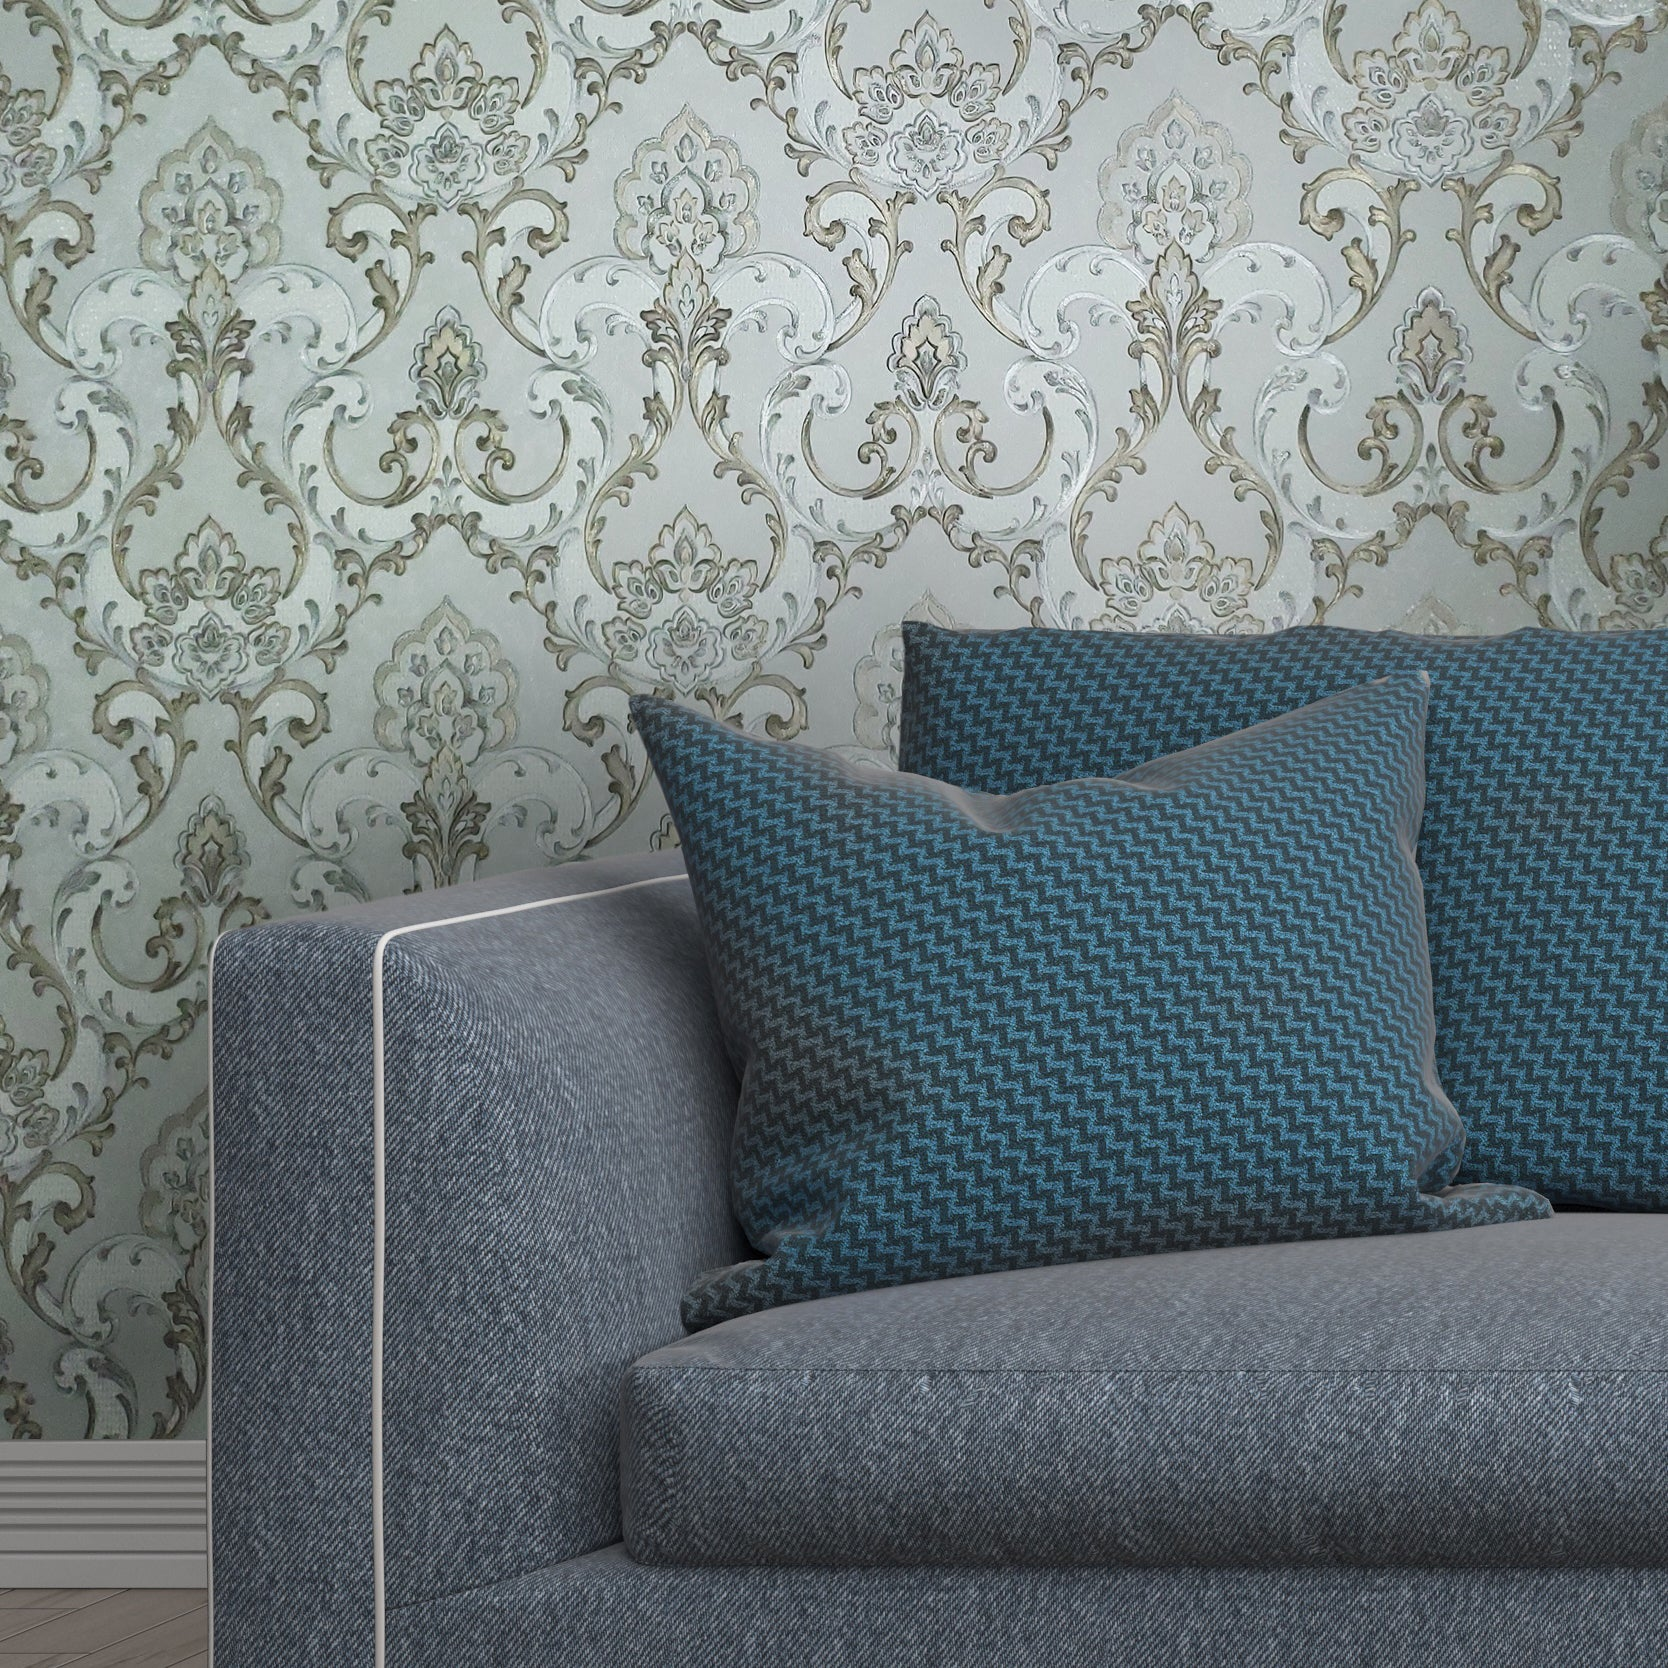 V512 06 Gray Gold Silver Metallic Textured Wallpaper Damask